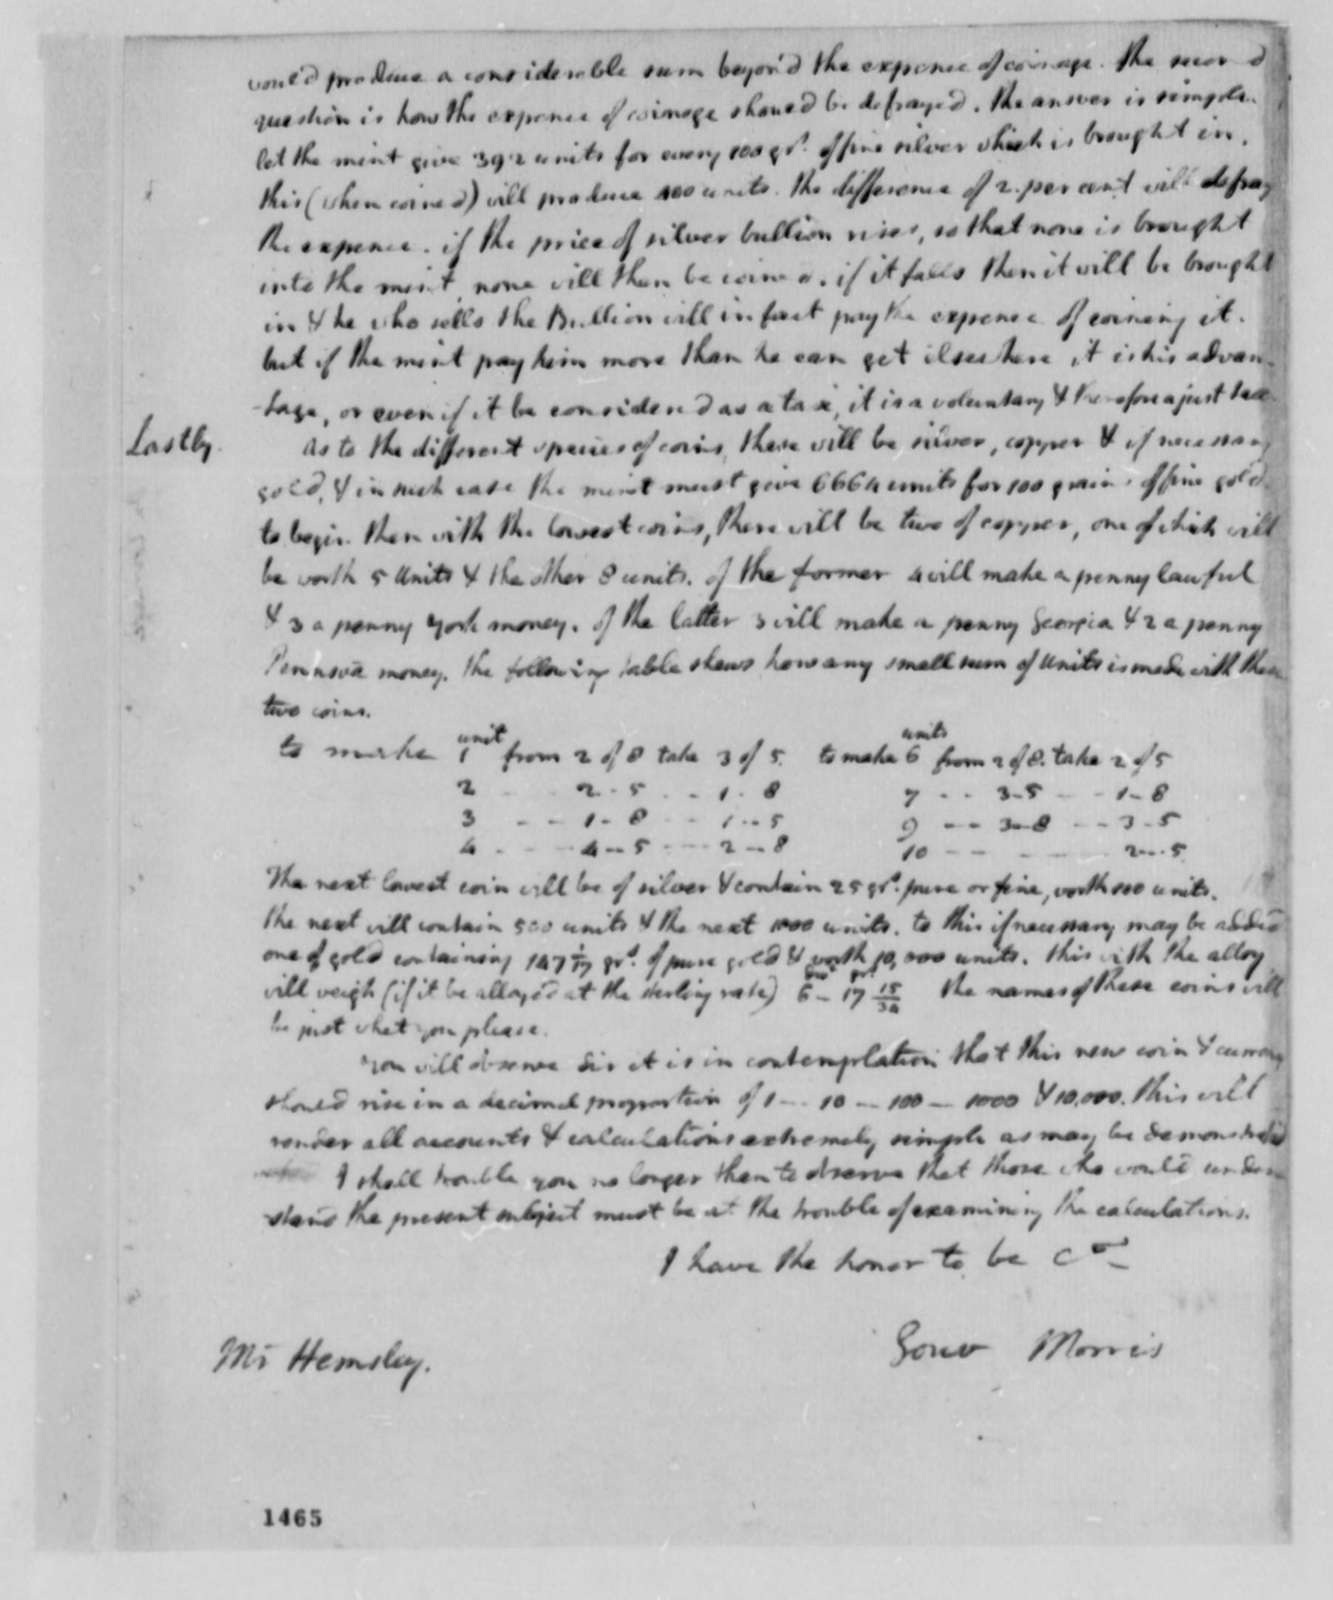 Gouverneur Morris to William Hensley, April 30, 1783, Coinage; Draft and Copy